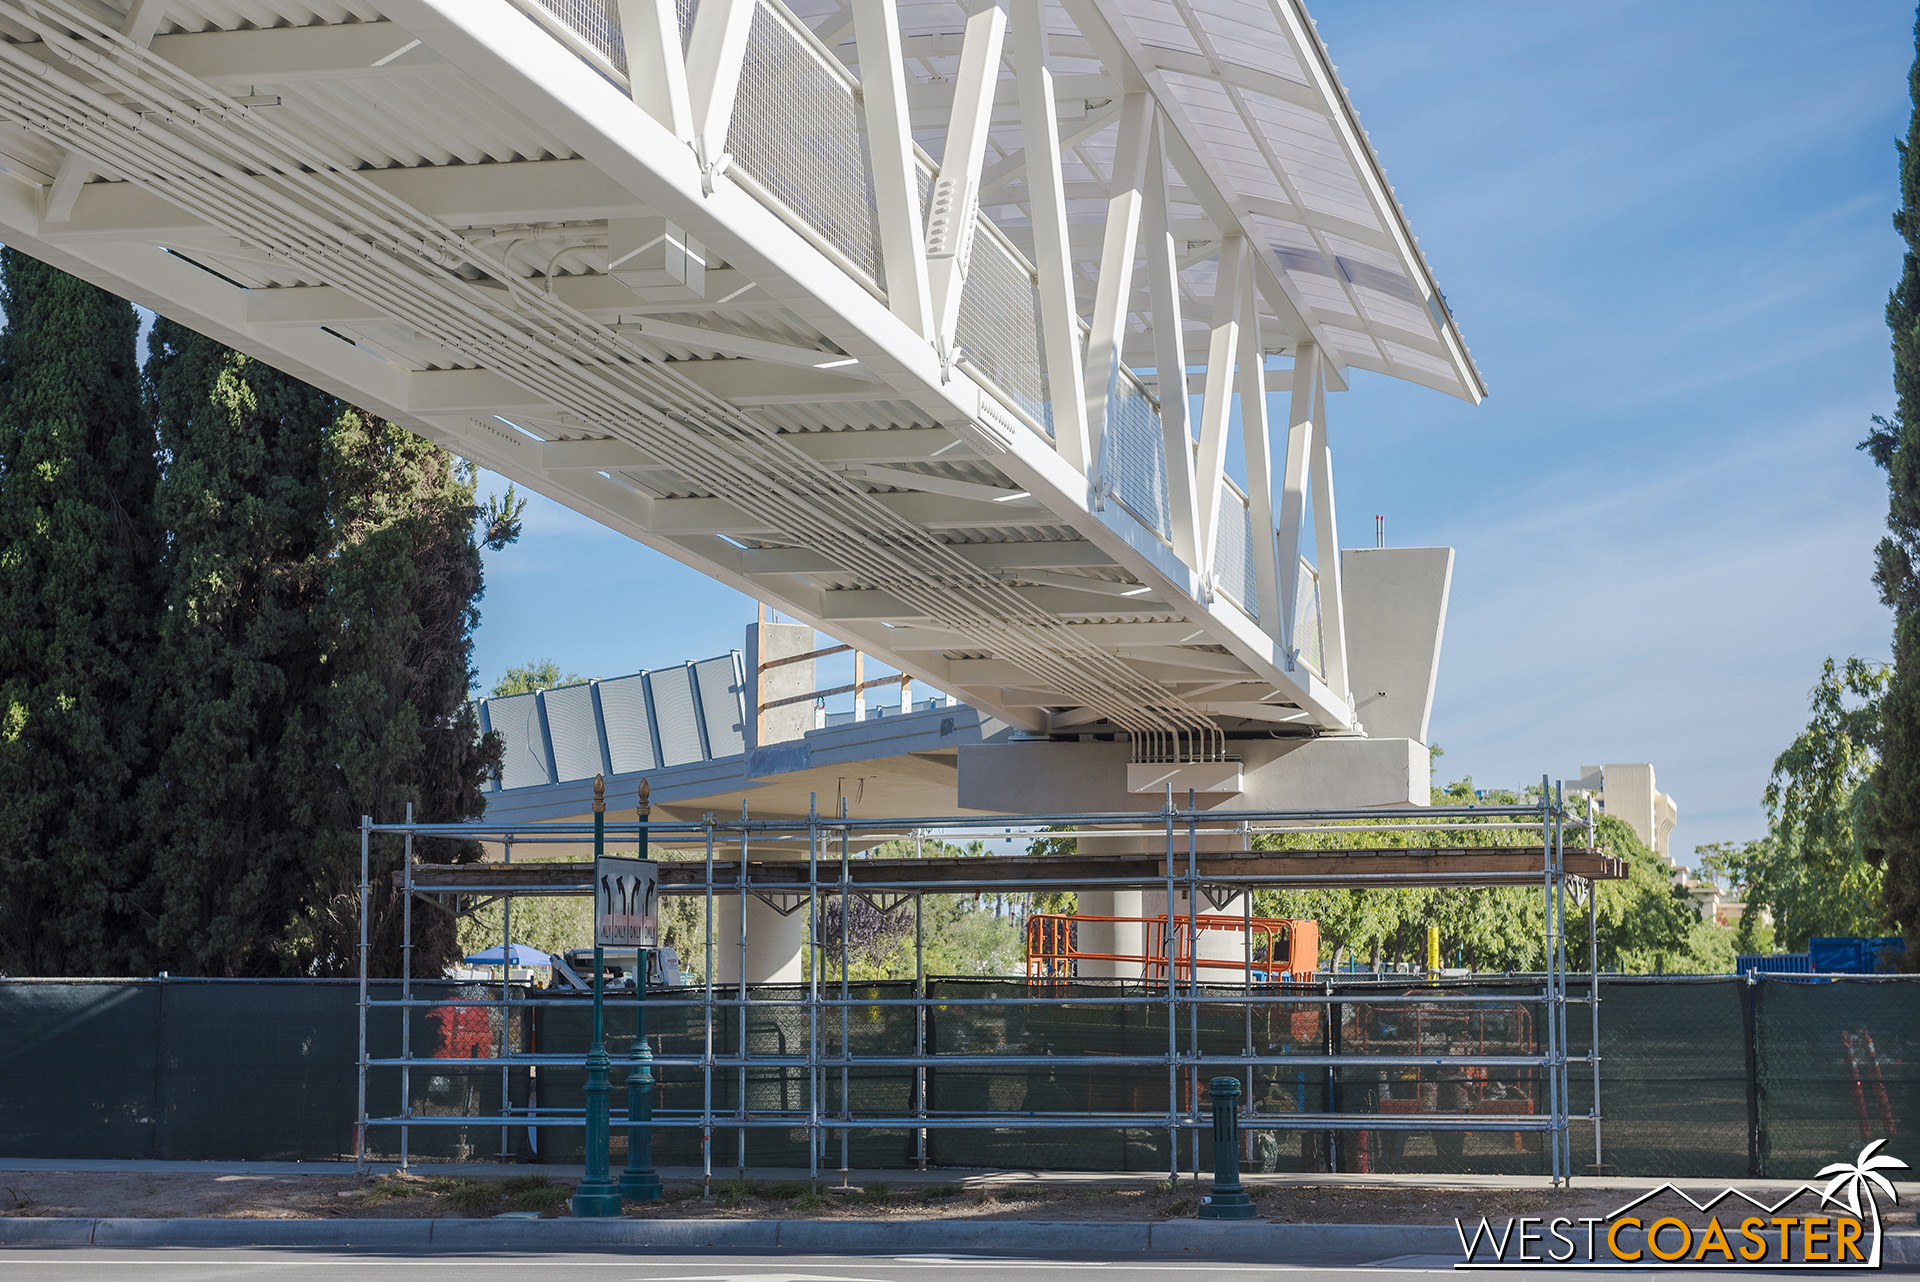 But we can see glimpses of new railing on the ramp down on the opposite side.